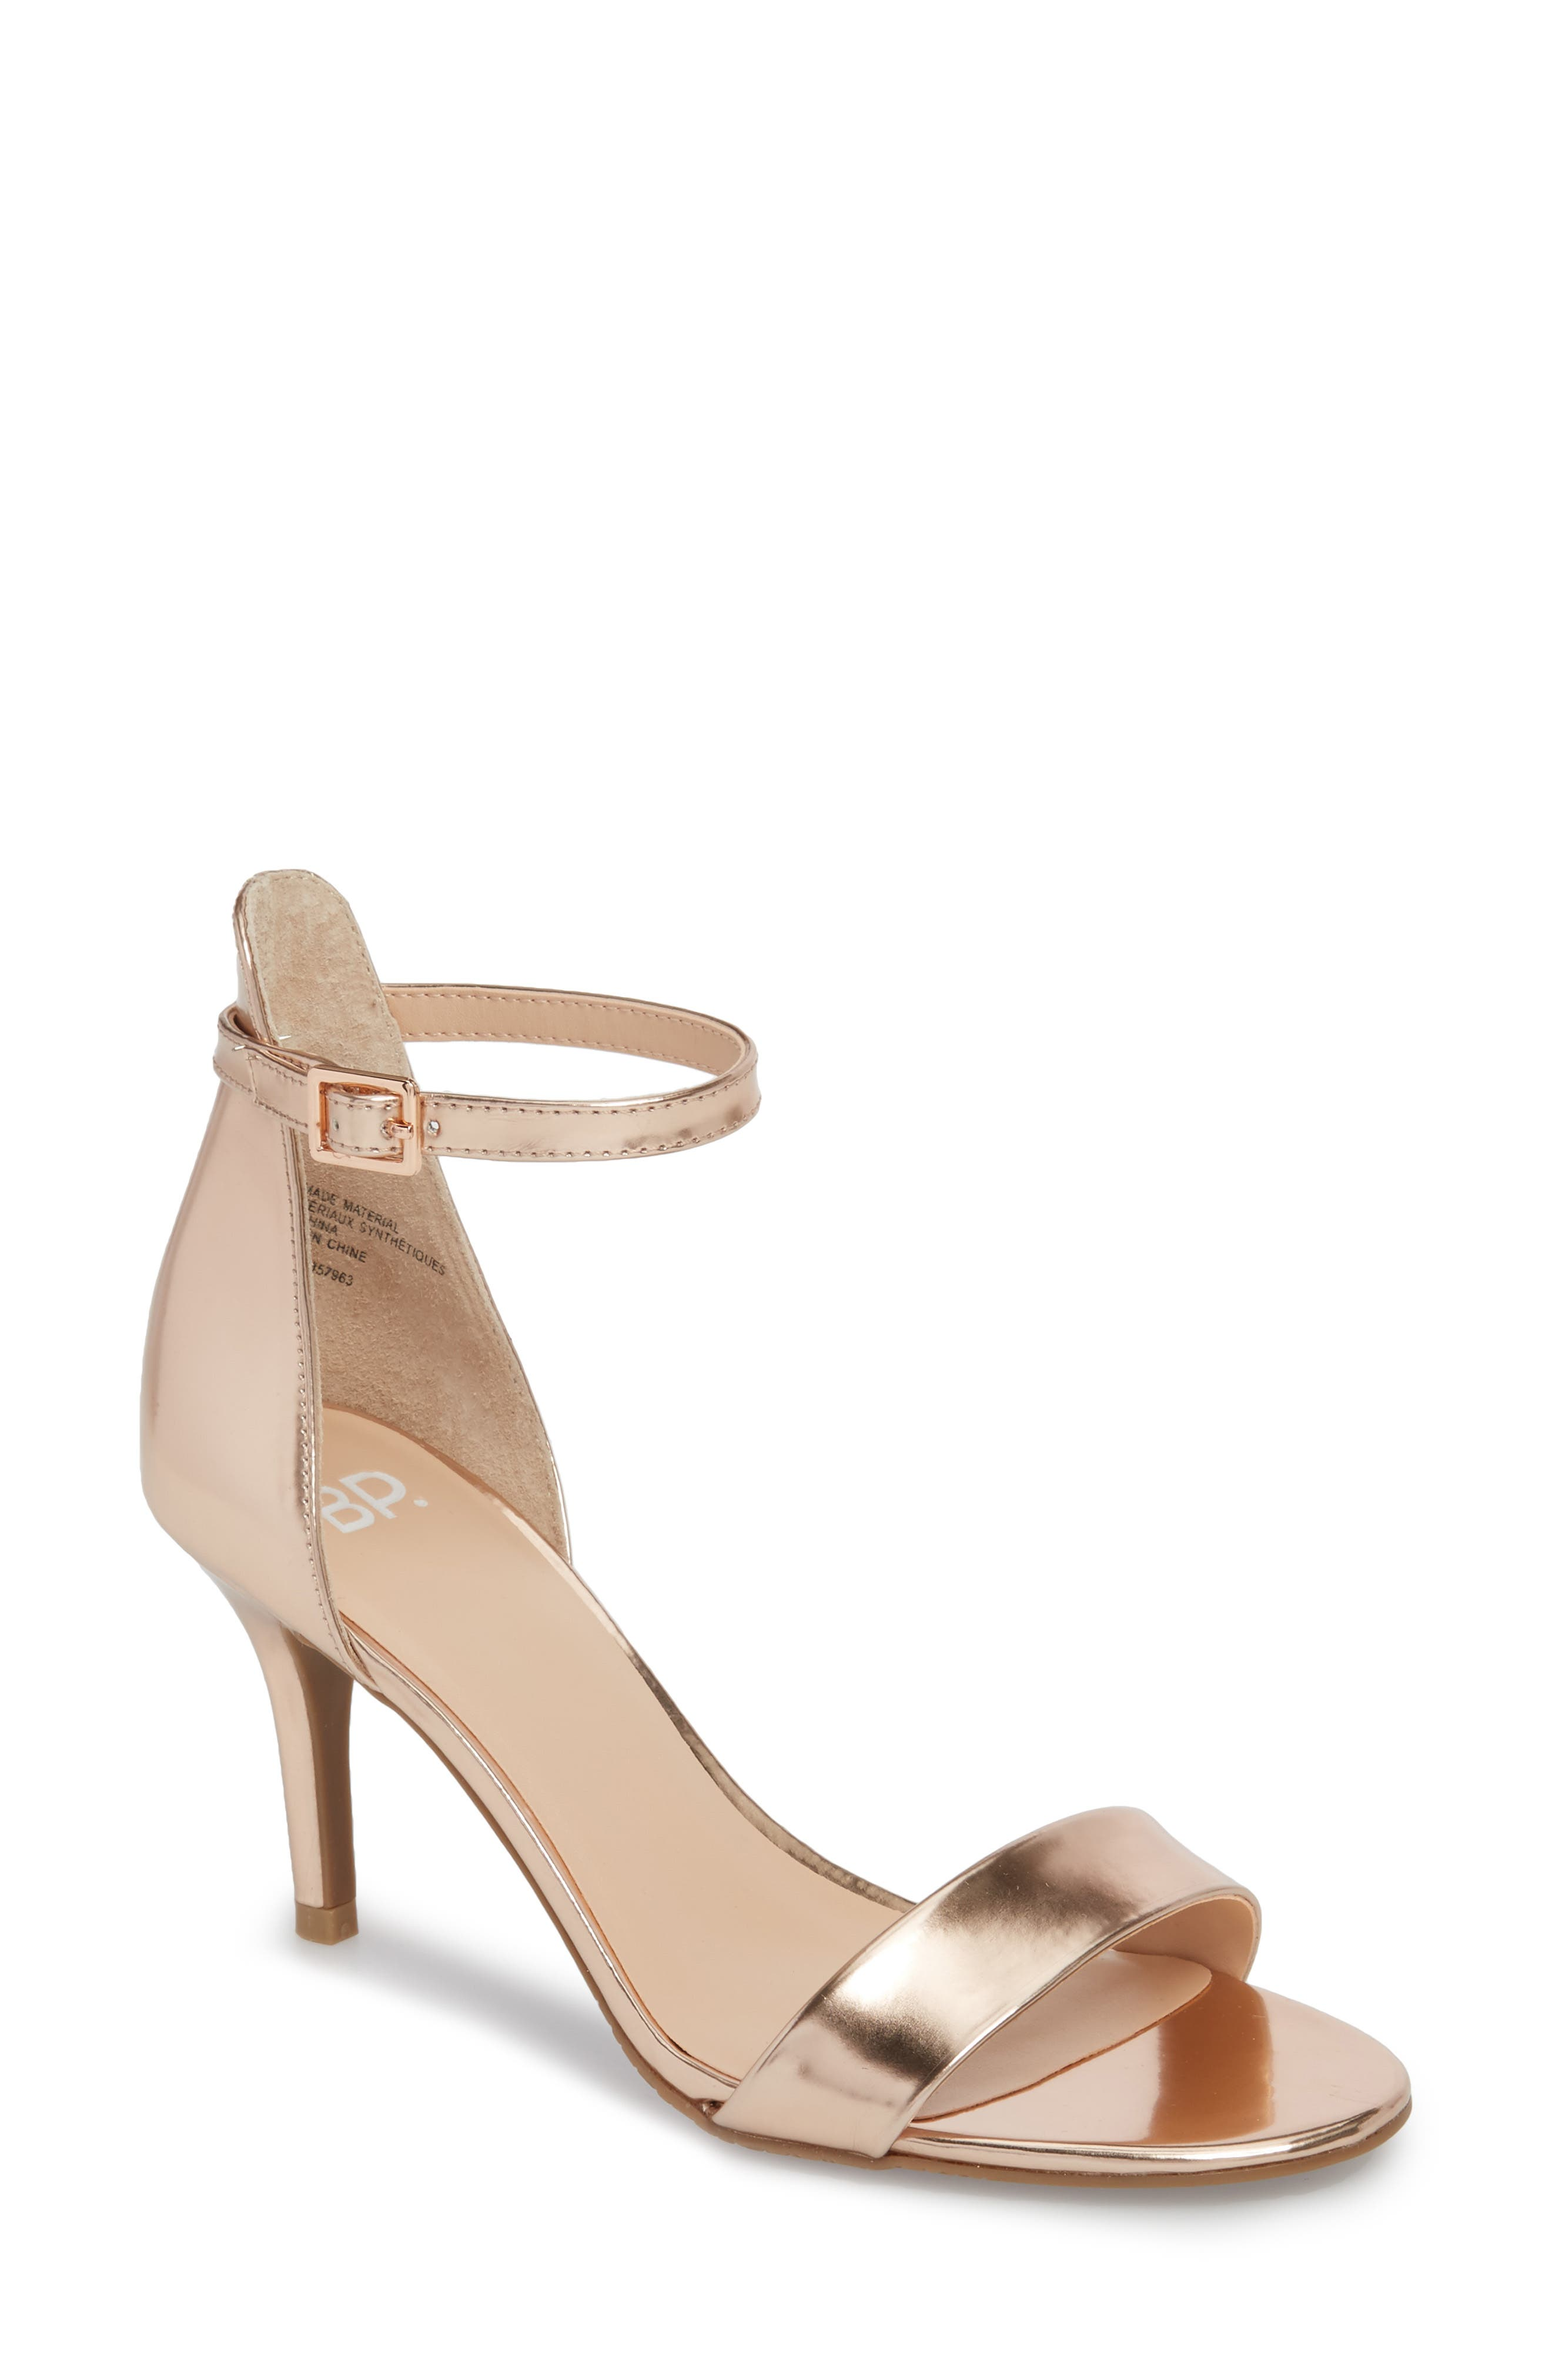 'Luminate' Open Toe Dress Sandal,                             Main thumbnail 12, color,